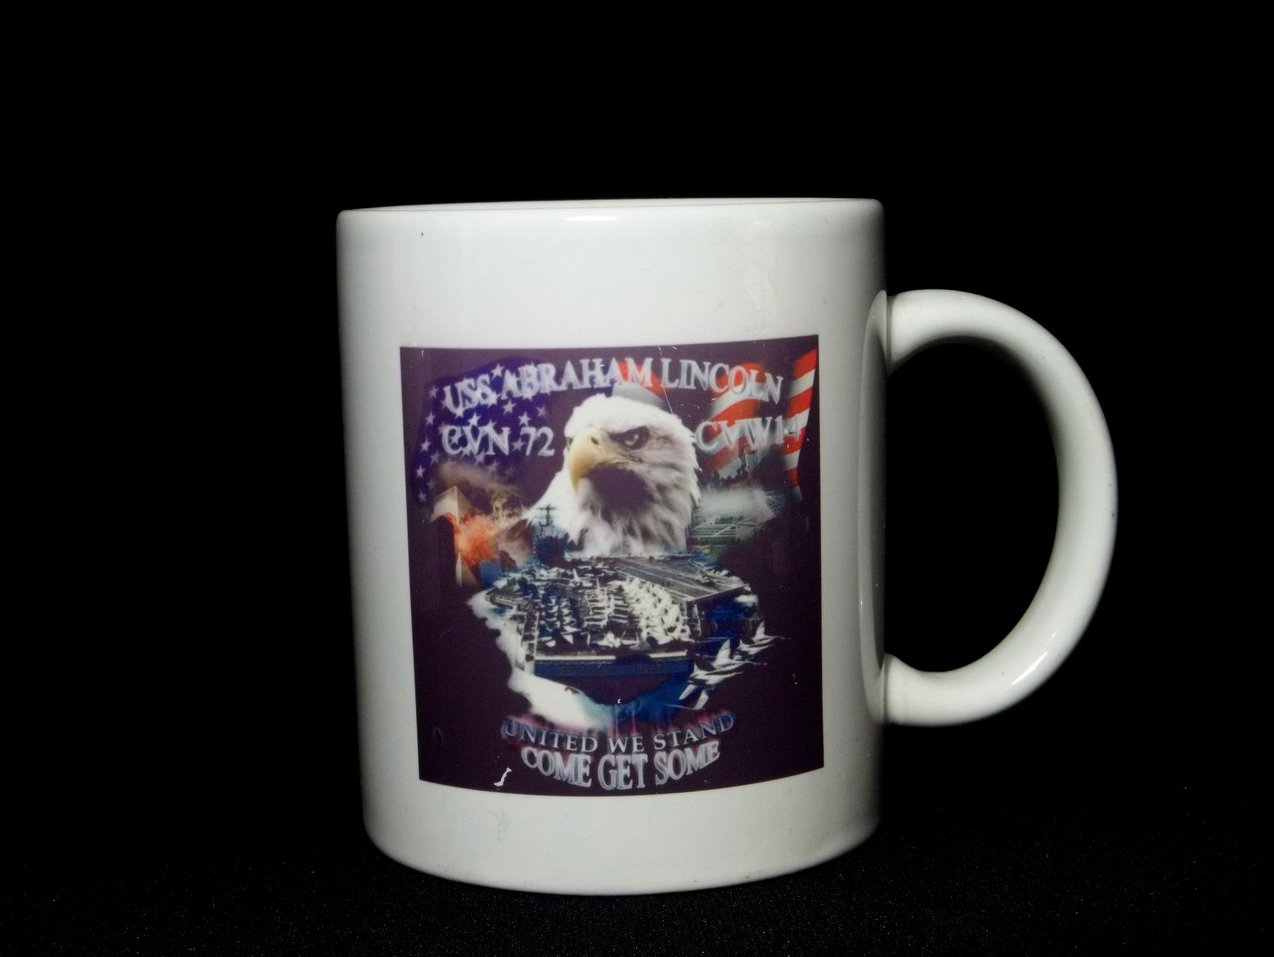 USS Abraham Lincoln CVN-72 Coffee Mug 12 Oz